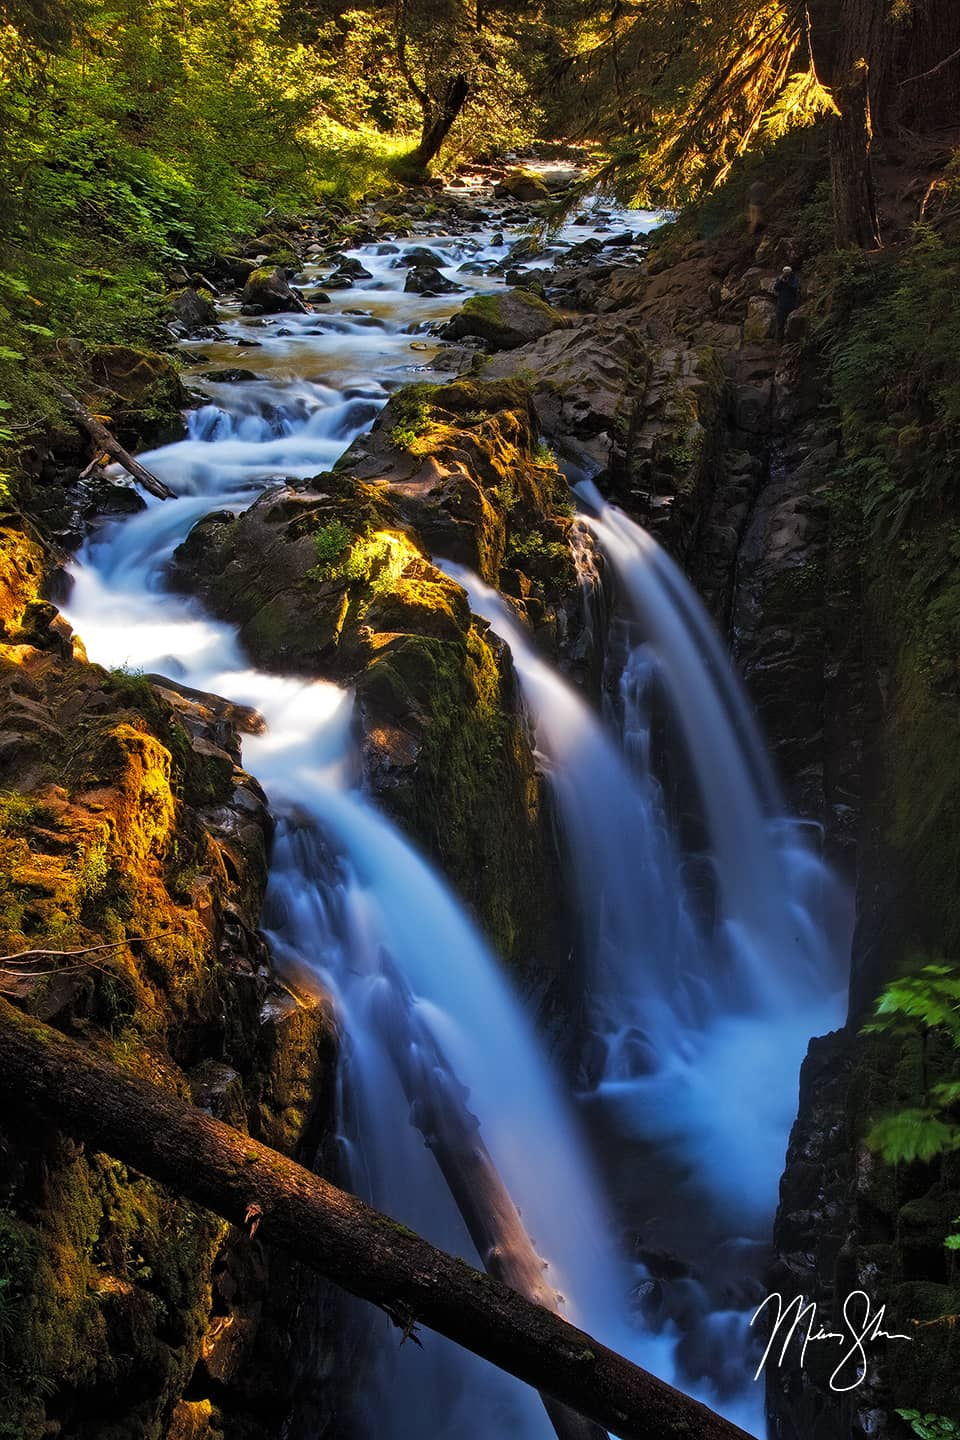 Sol Duc Falls #2 - Sol Duc Falls, Olympic National Park, Washington, USA